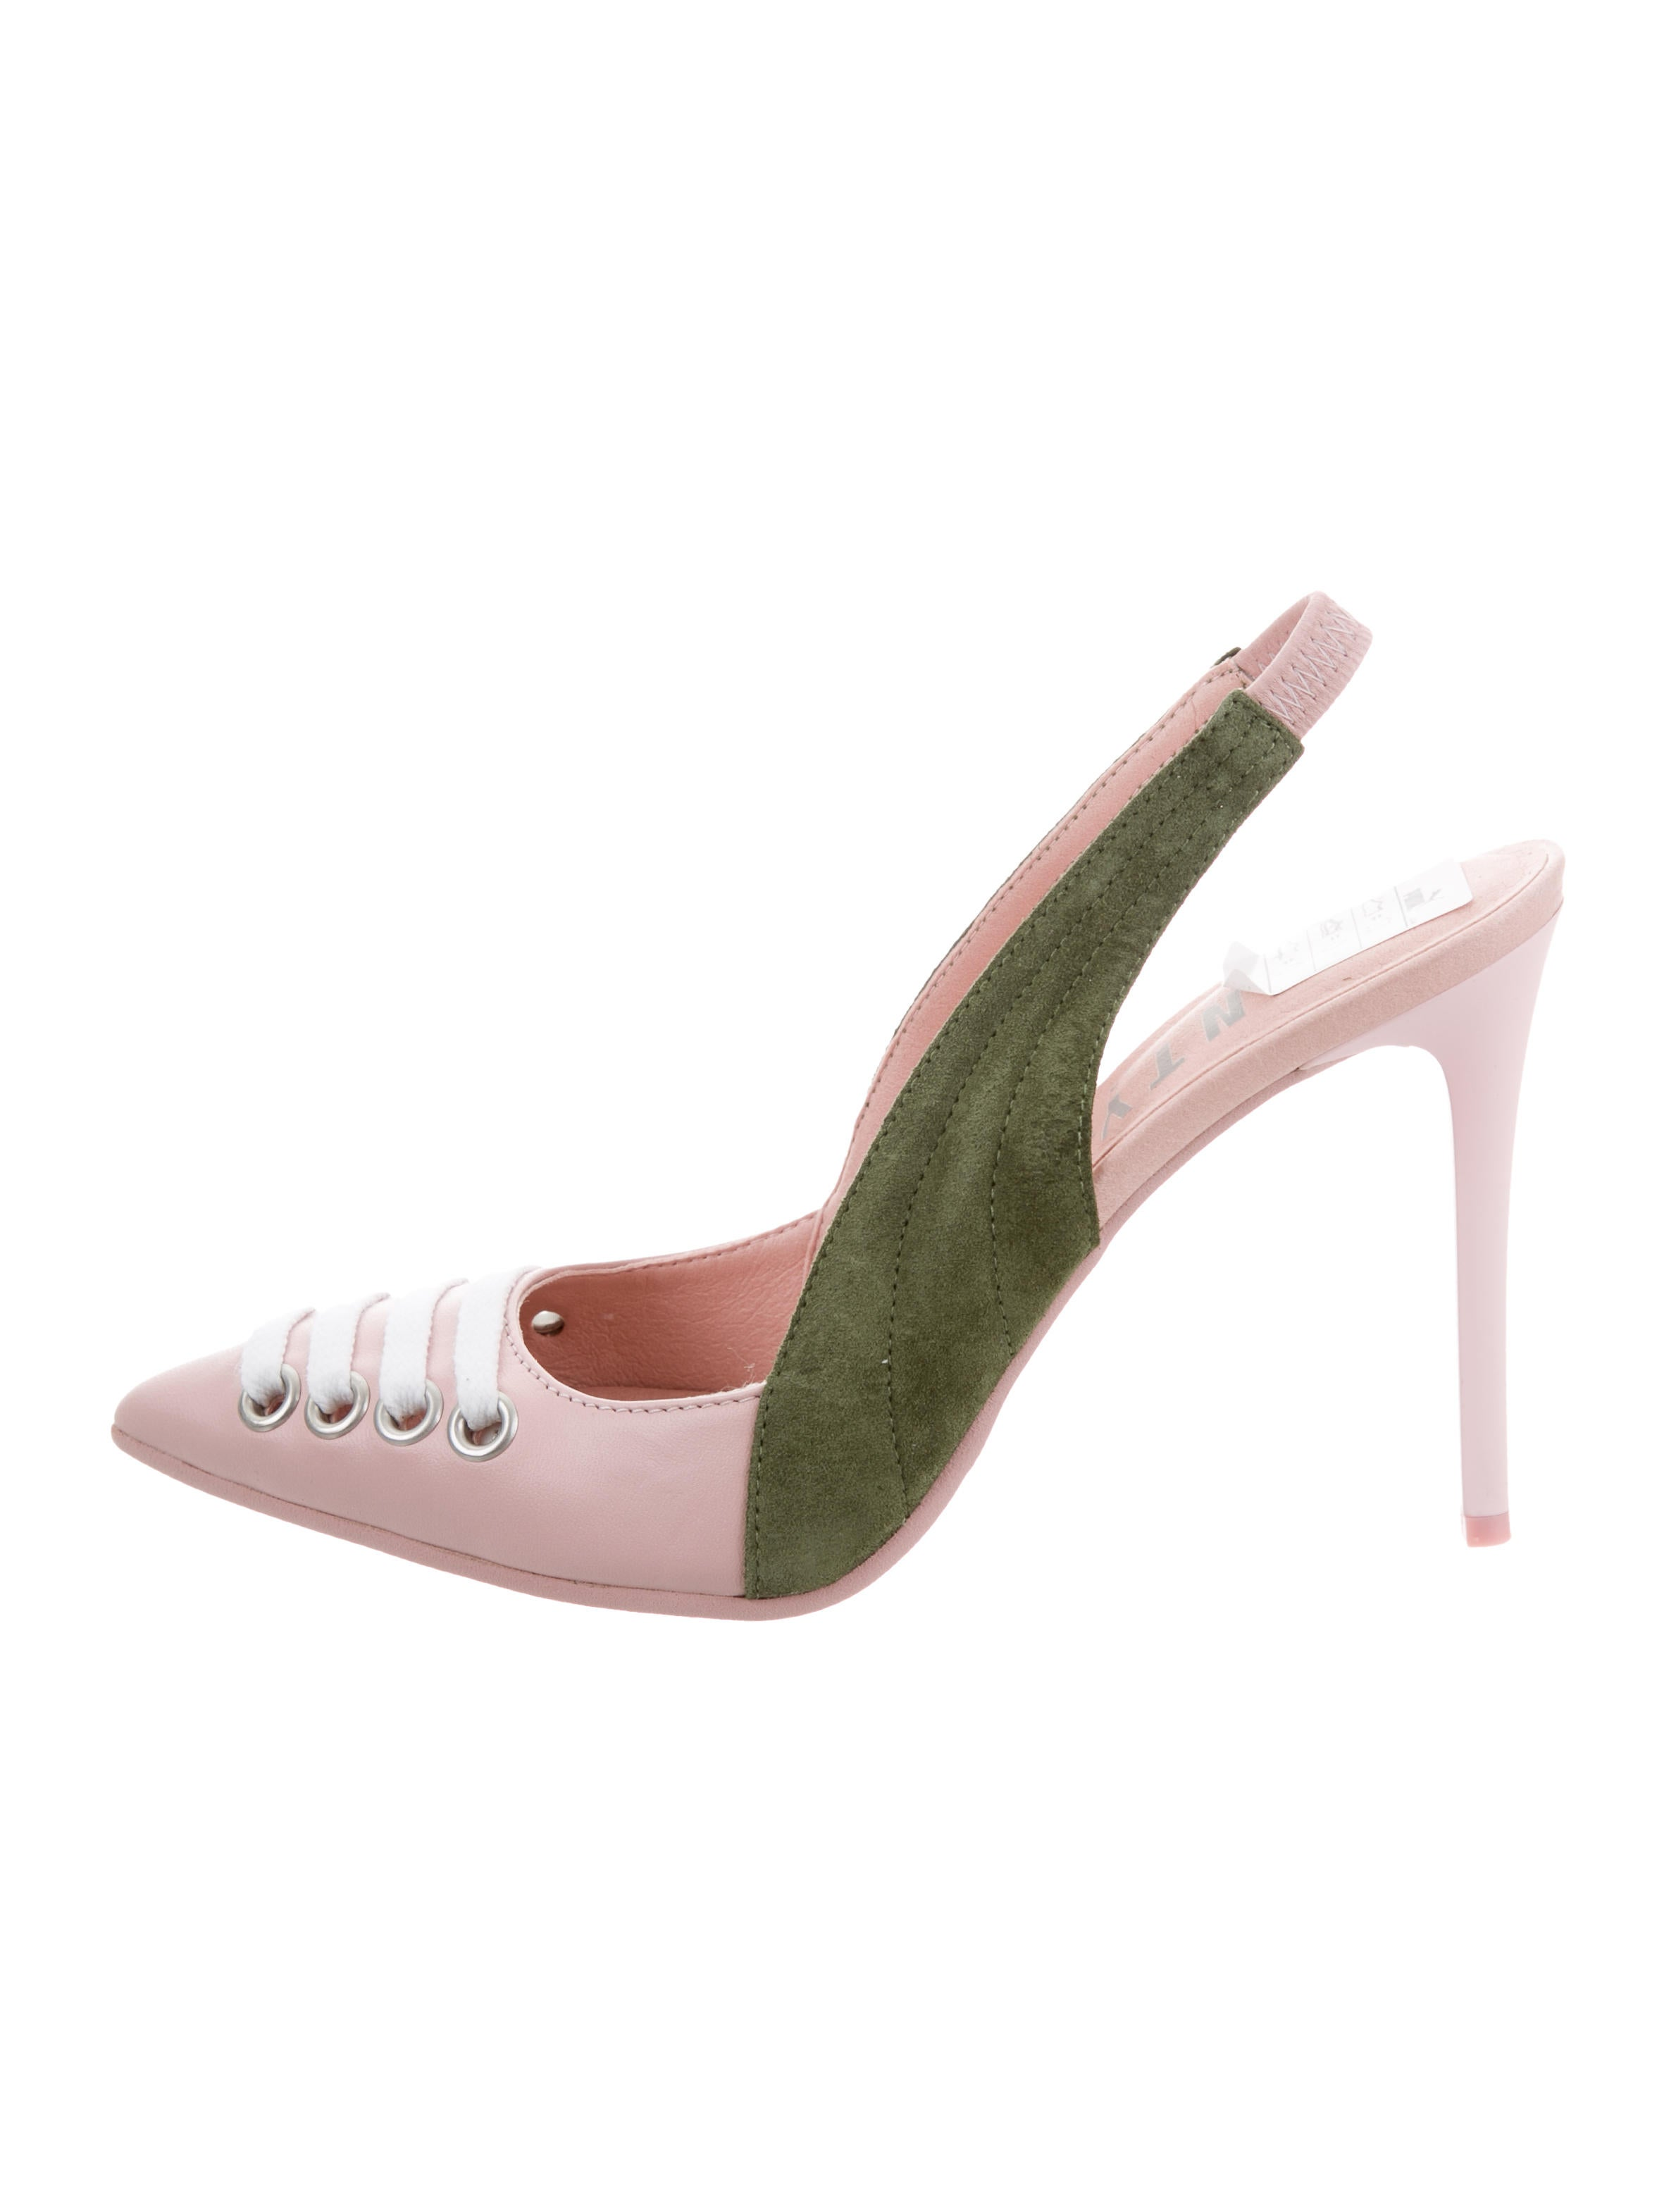 best prices cheap online Fenty x Puma Pointed-Toe Slingback Pumps w/ Tags cheap sale amazon classic cheap price professional cheap online discount for nice 5mj9svF